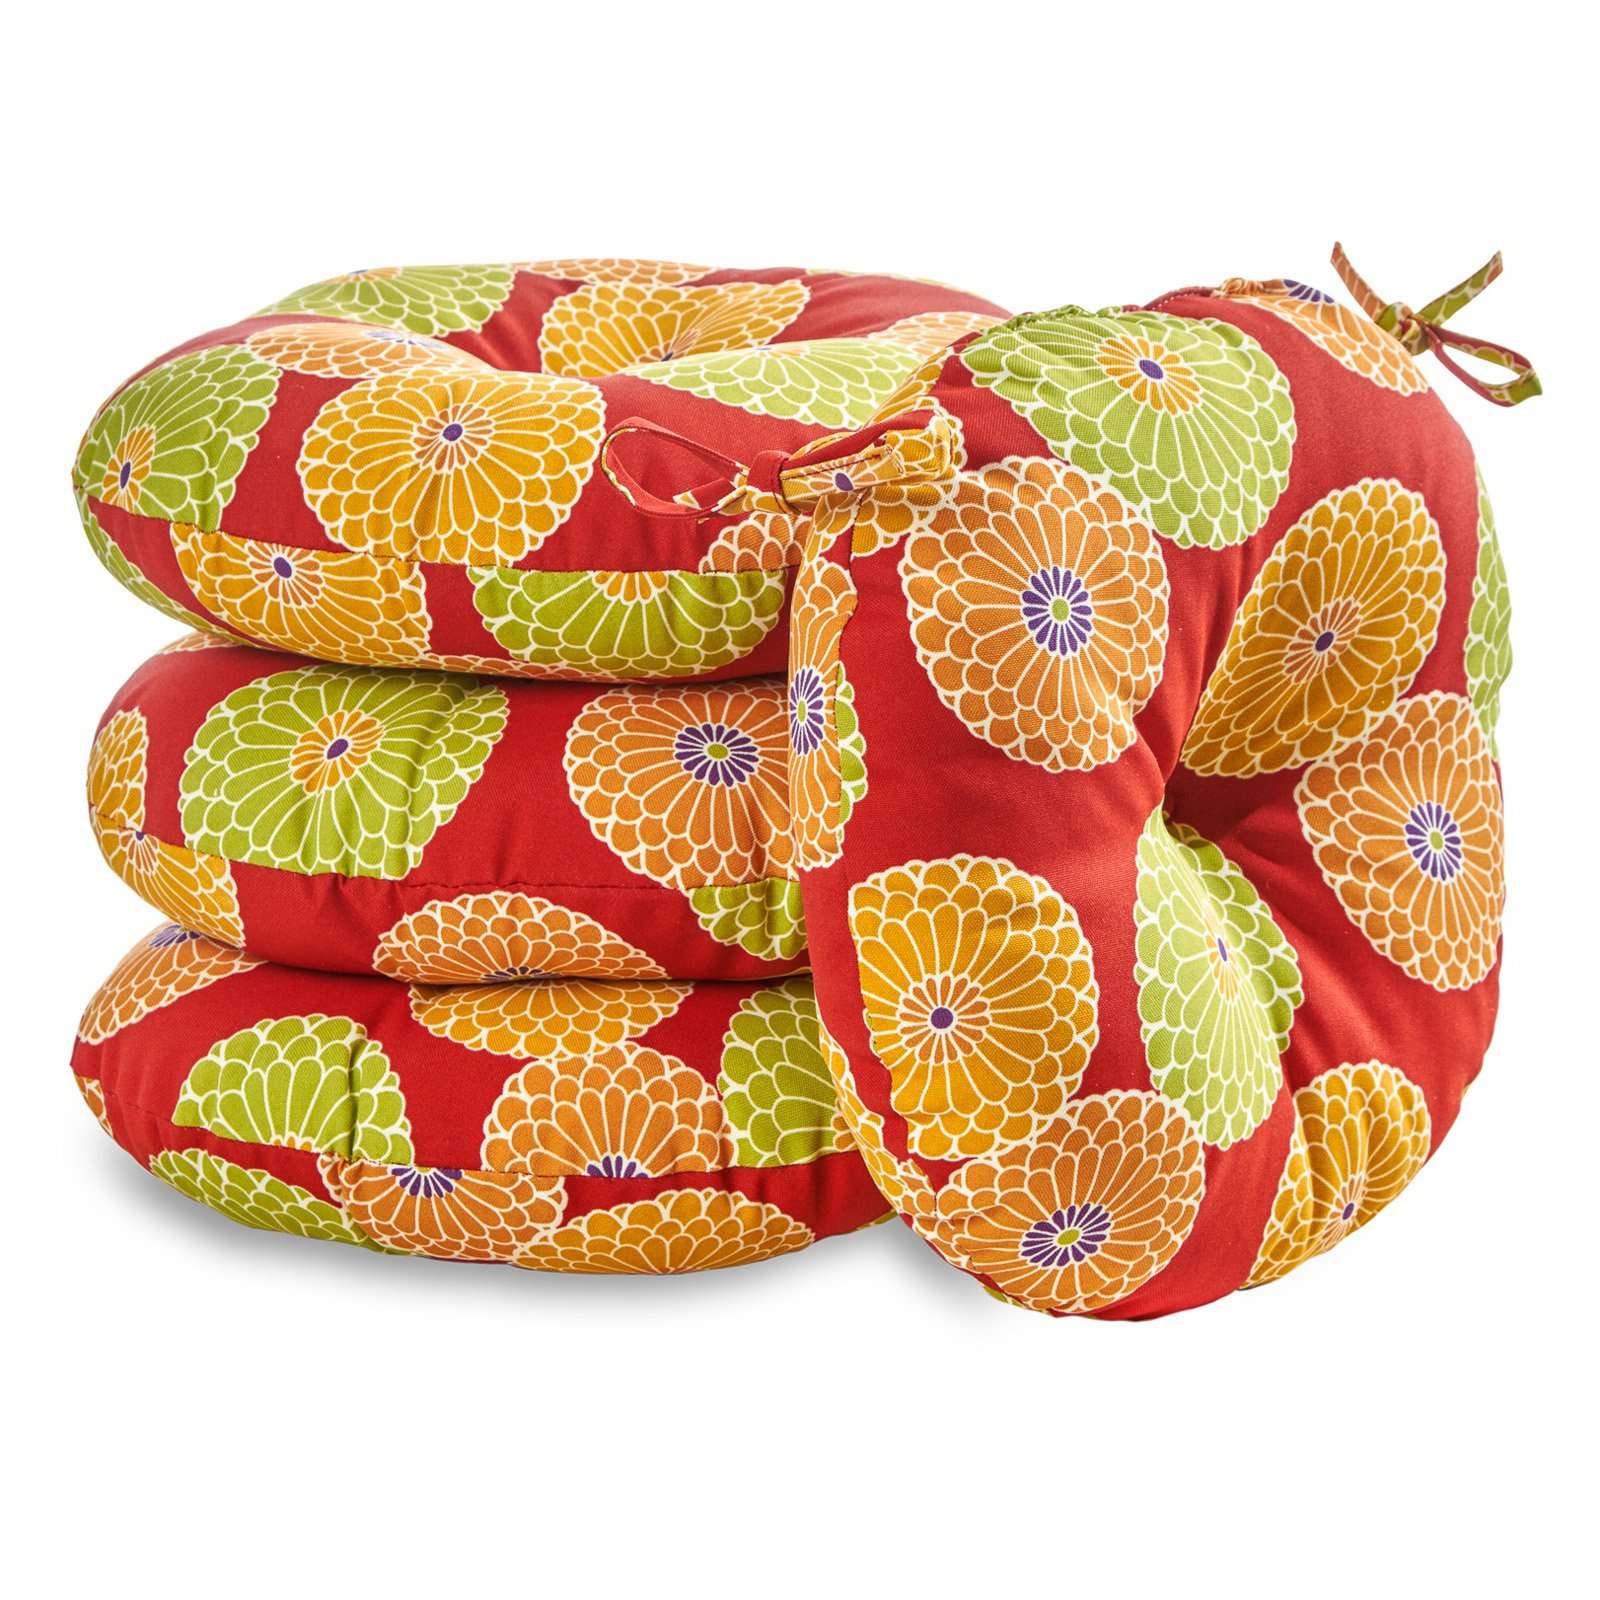 """Greendale Home Fashions 18"""" Round Outdoor Bistro Chair Cushion, Set of 4 - multiple colors"""